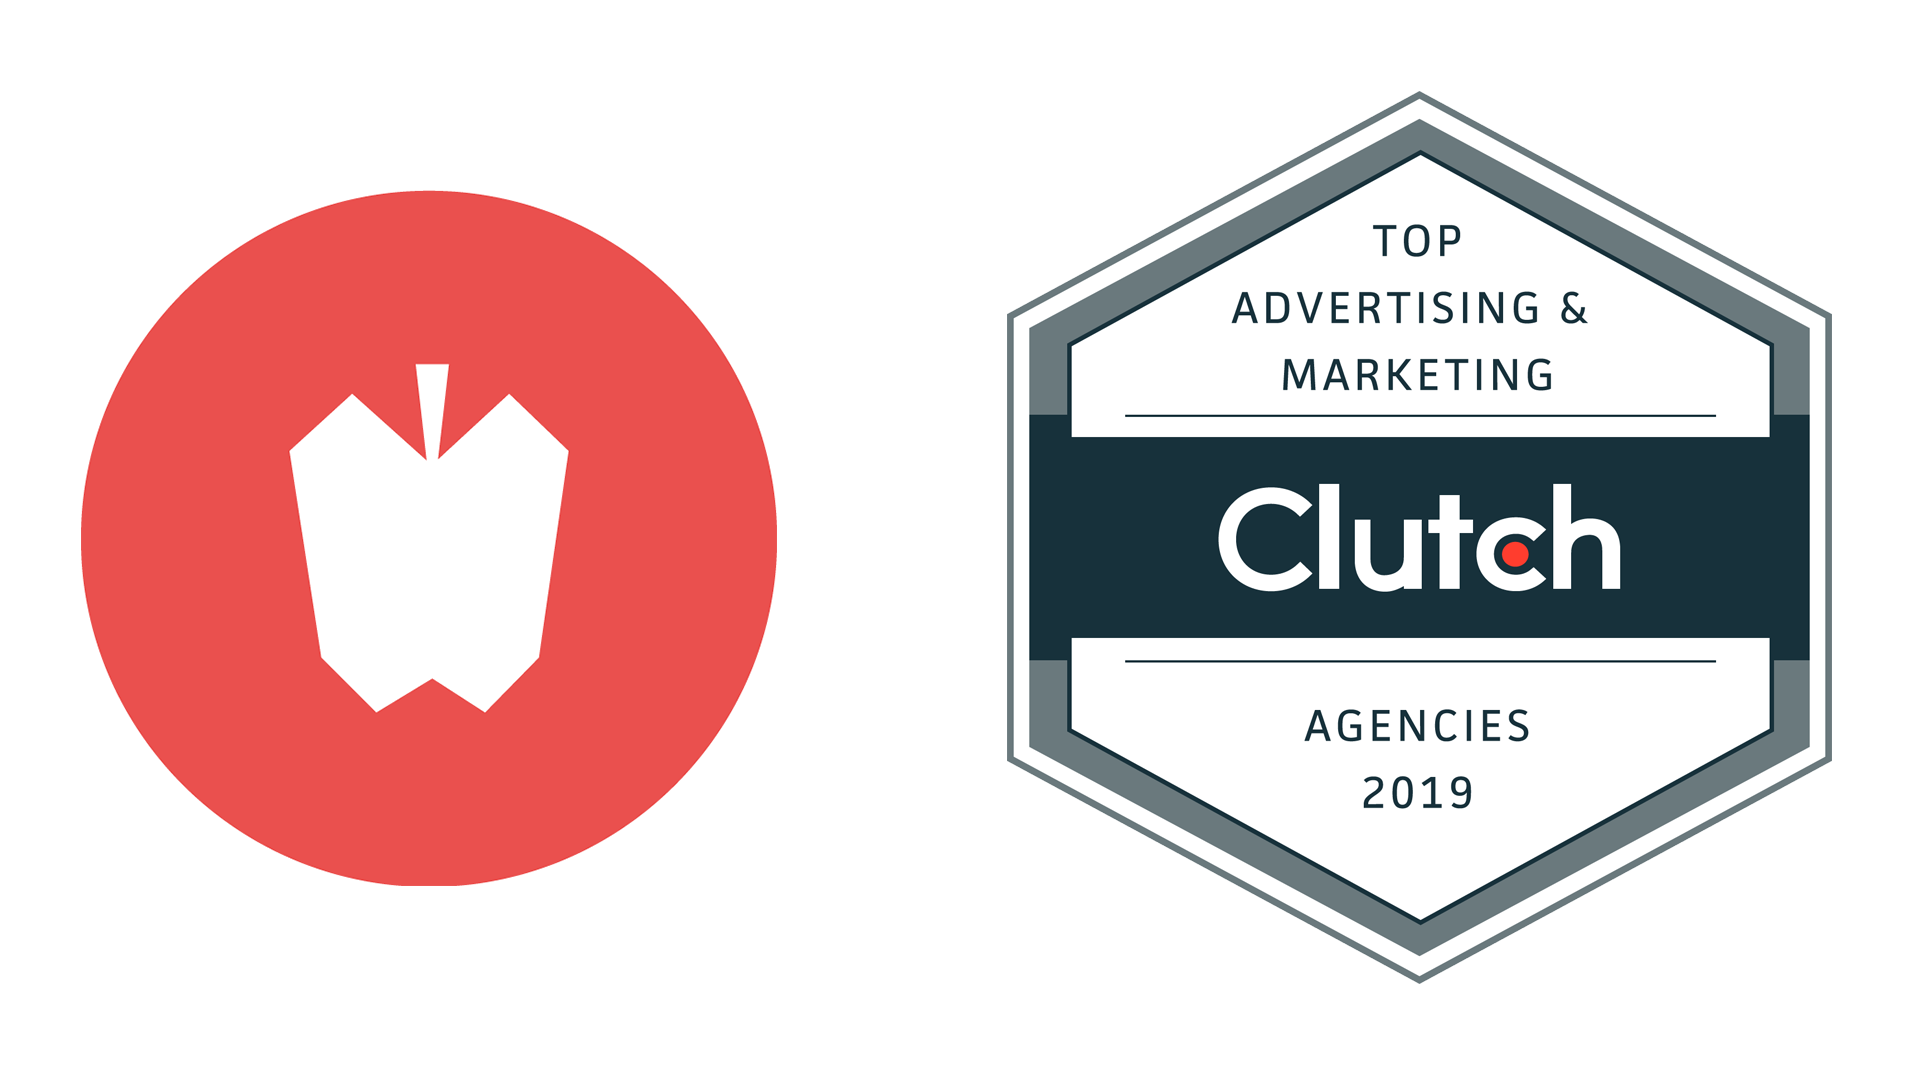 Eden Agency are part of the Top Advertising and Marketing Agencies in the UK